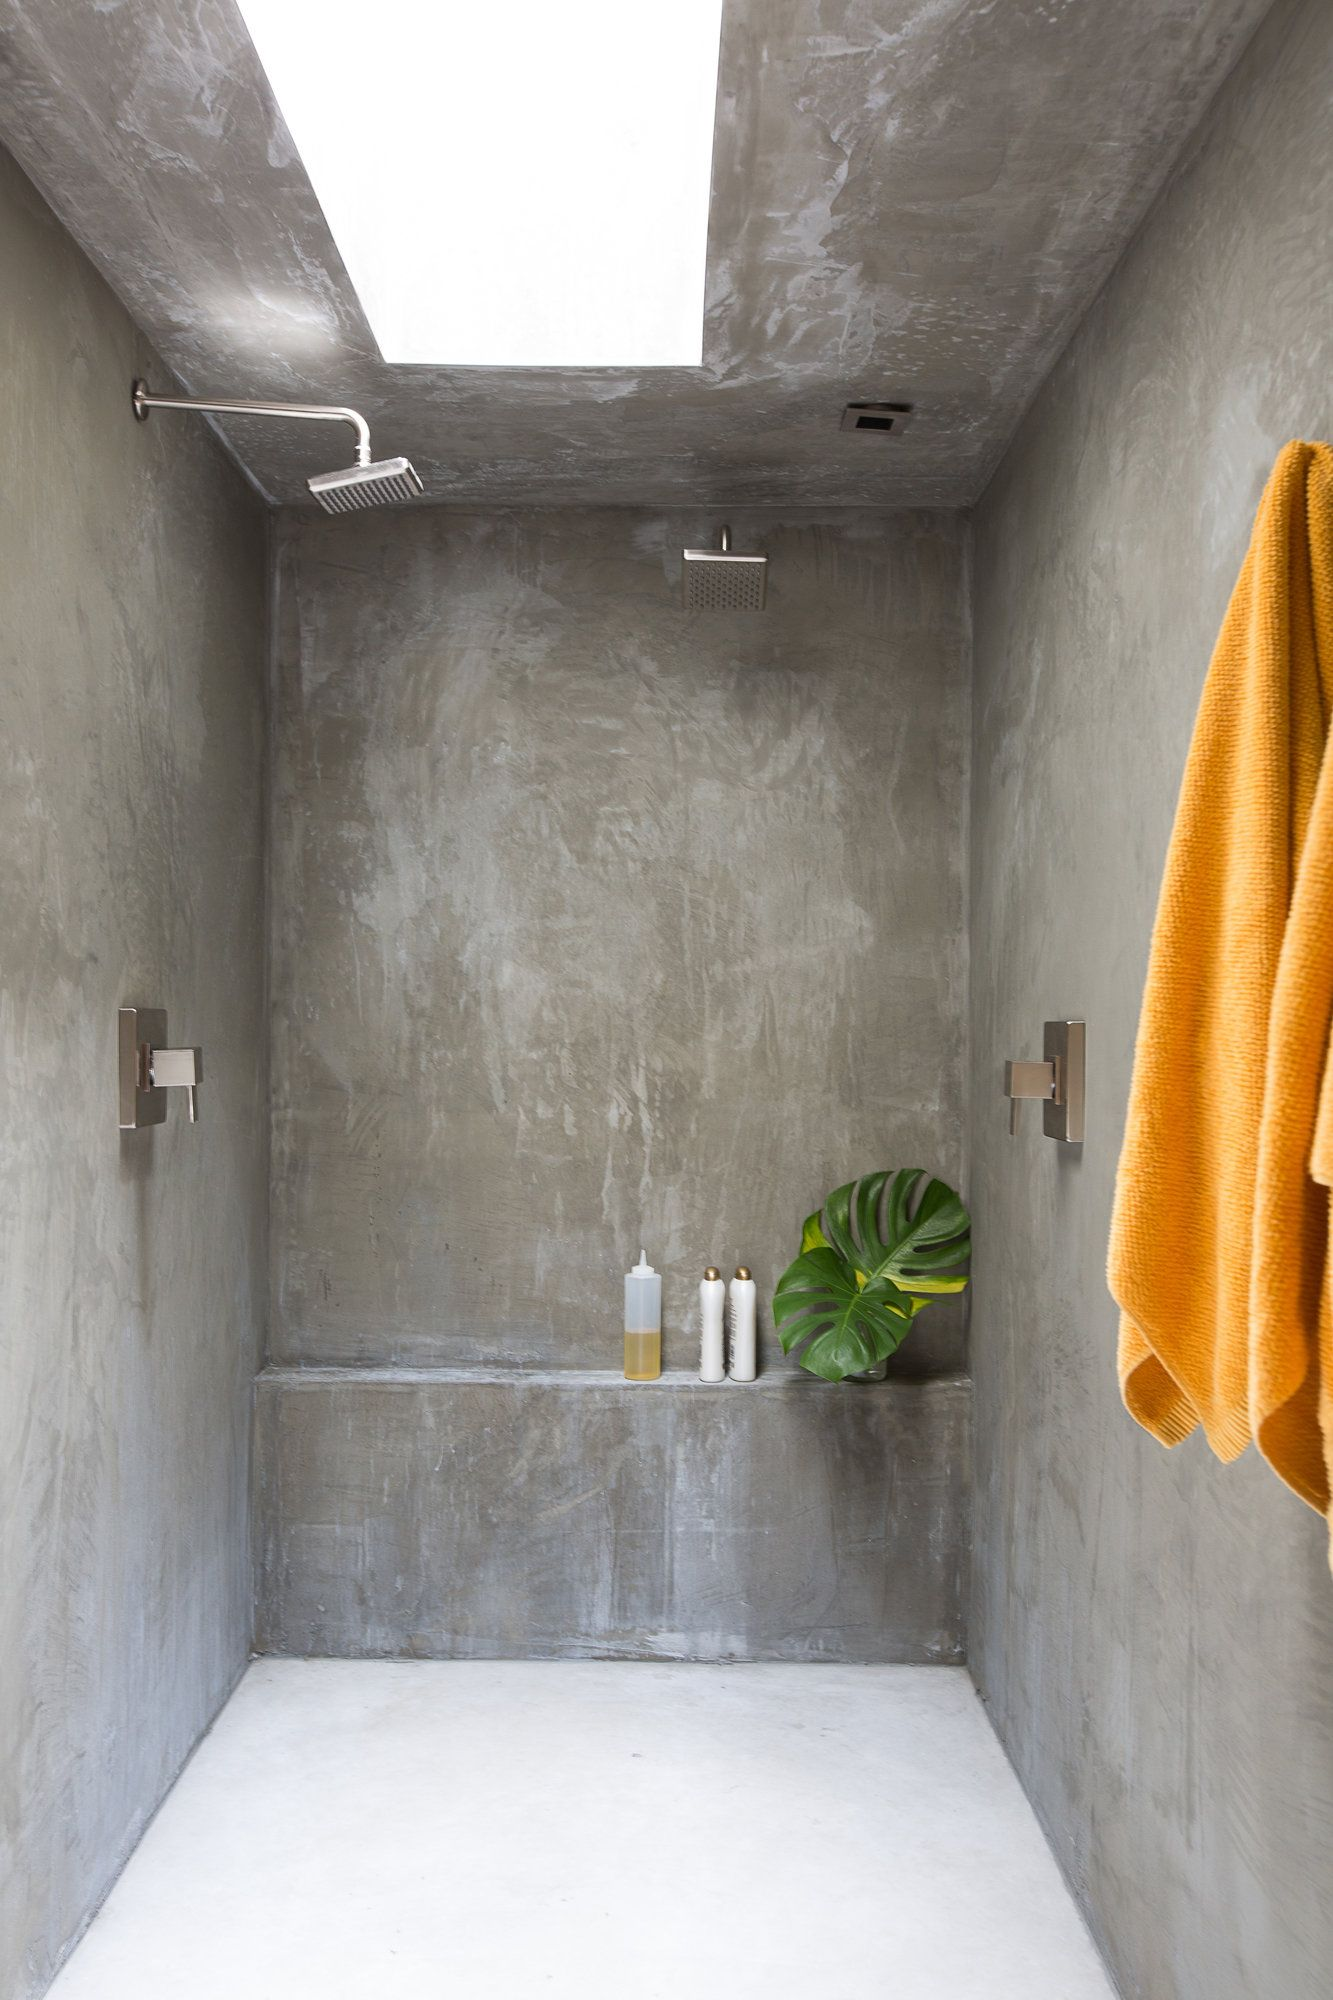 The Bathroom Walls Are Finished In Concrete Photo Laure Joliet For New York Times